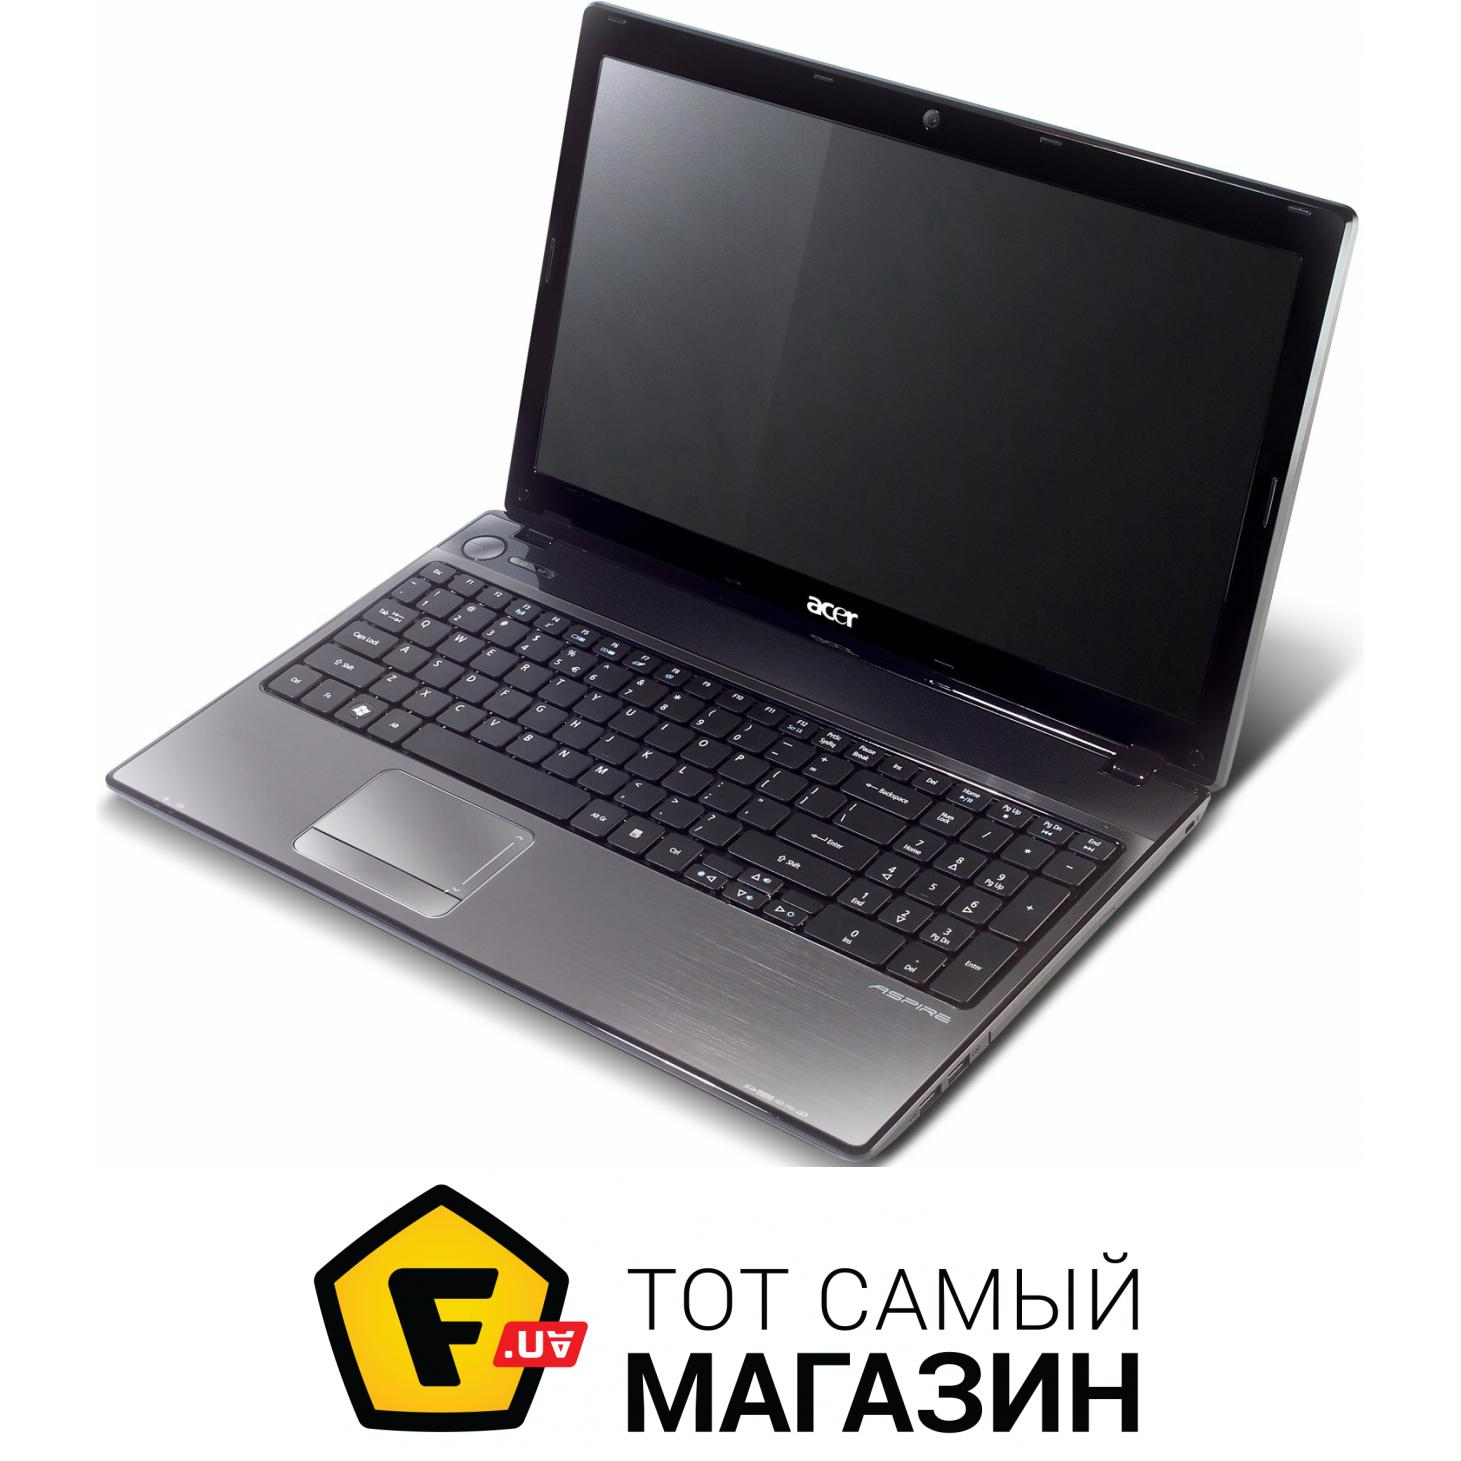 DRIVER FOR ACER ASPIRE 5741ZG WIFI